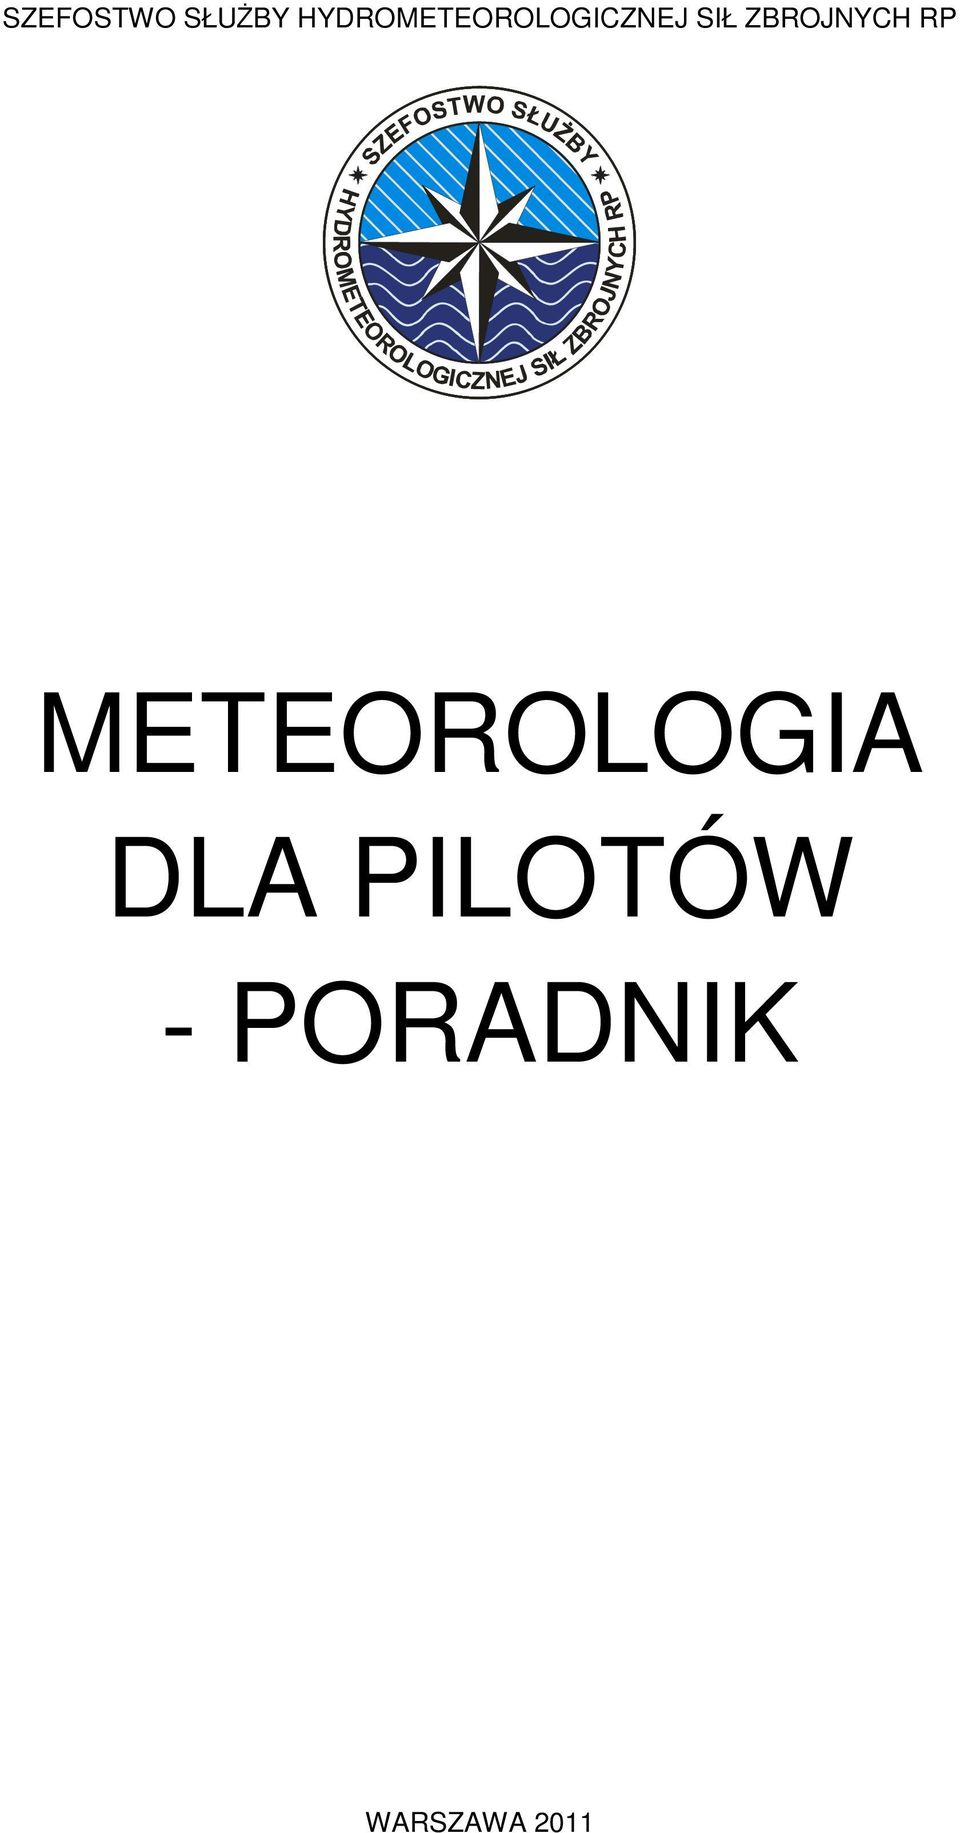 ZBROJNYCH RP METEOROLOGIA